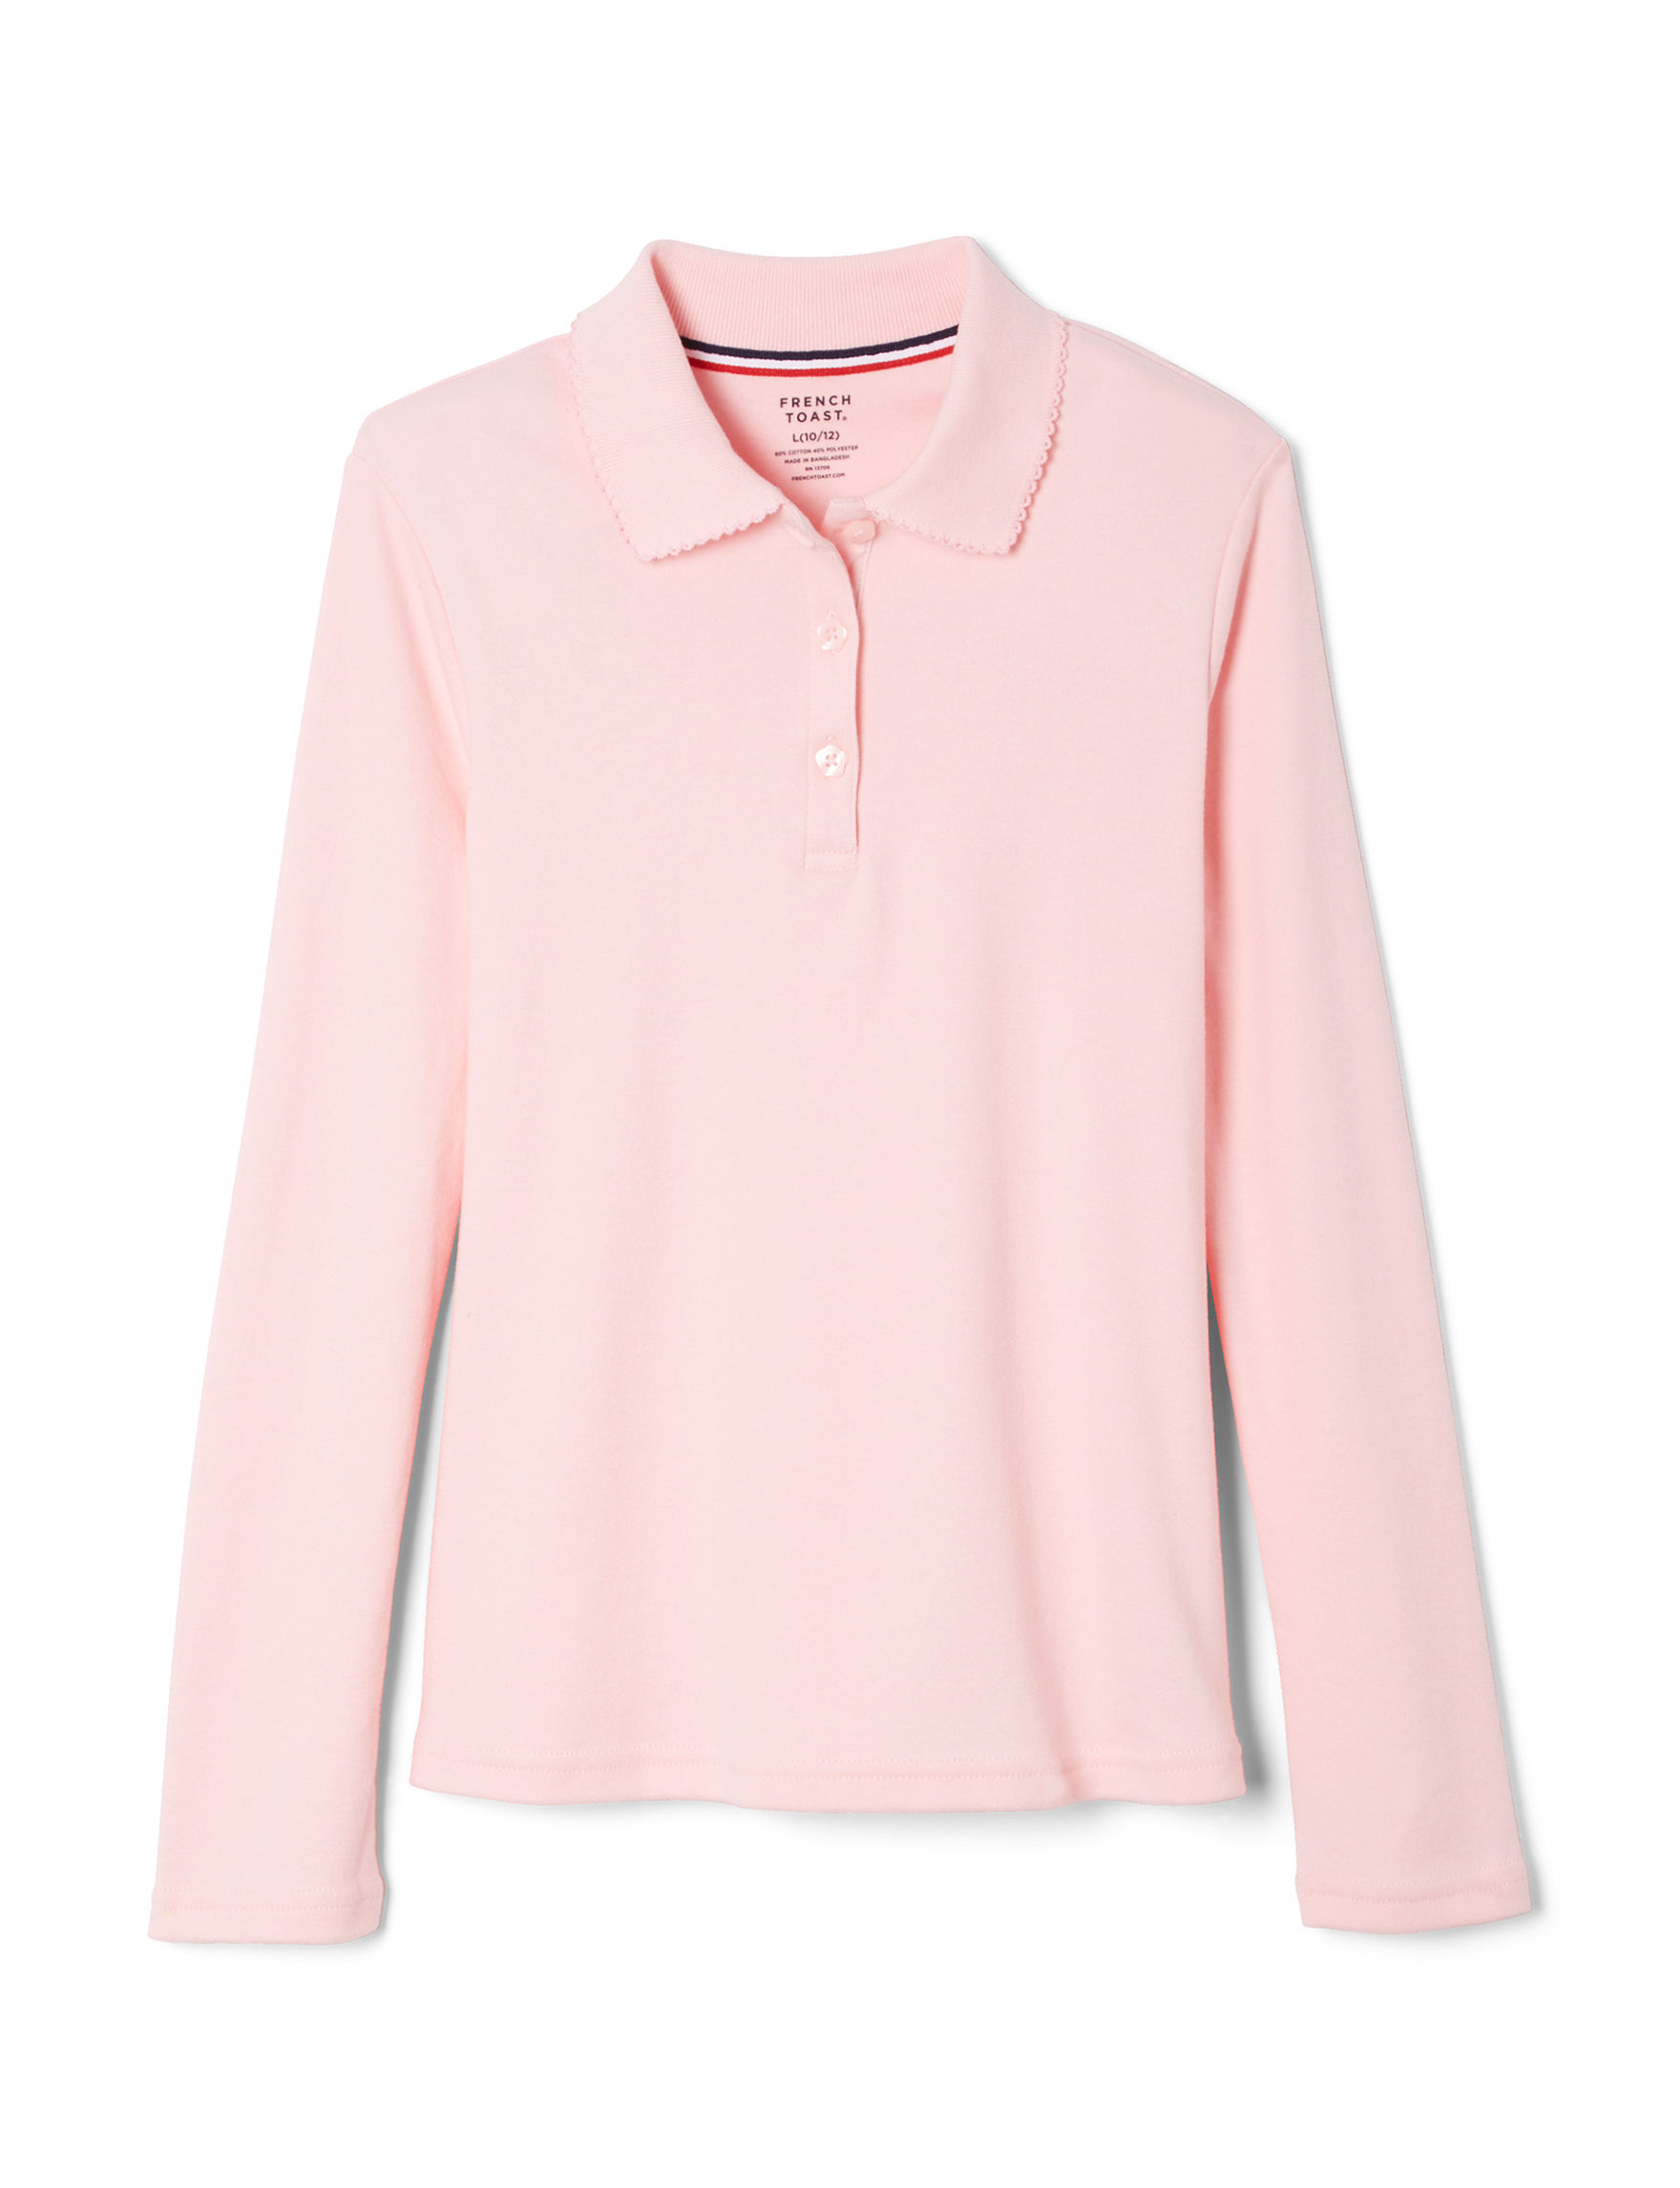 French Toast Pink Polos